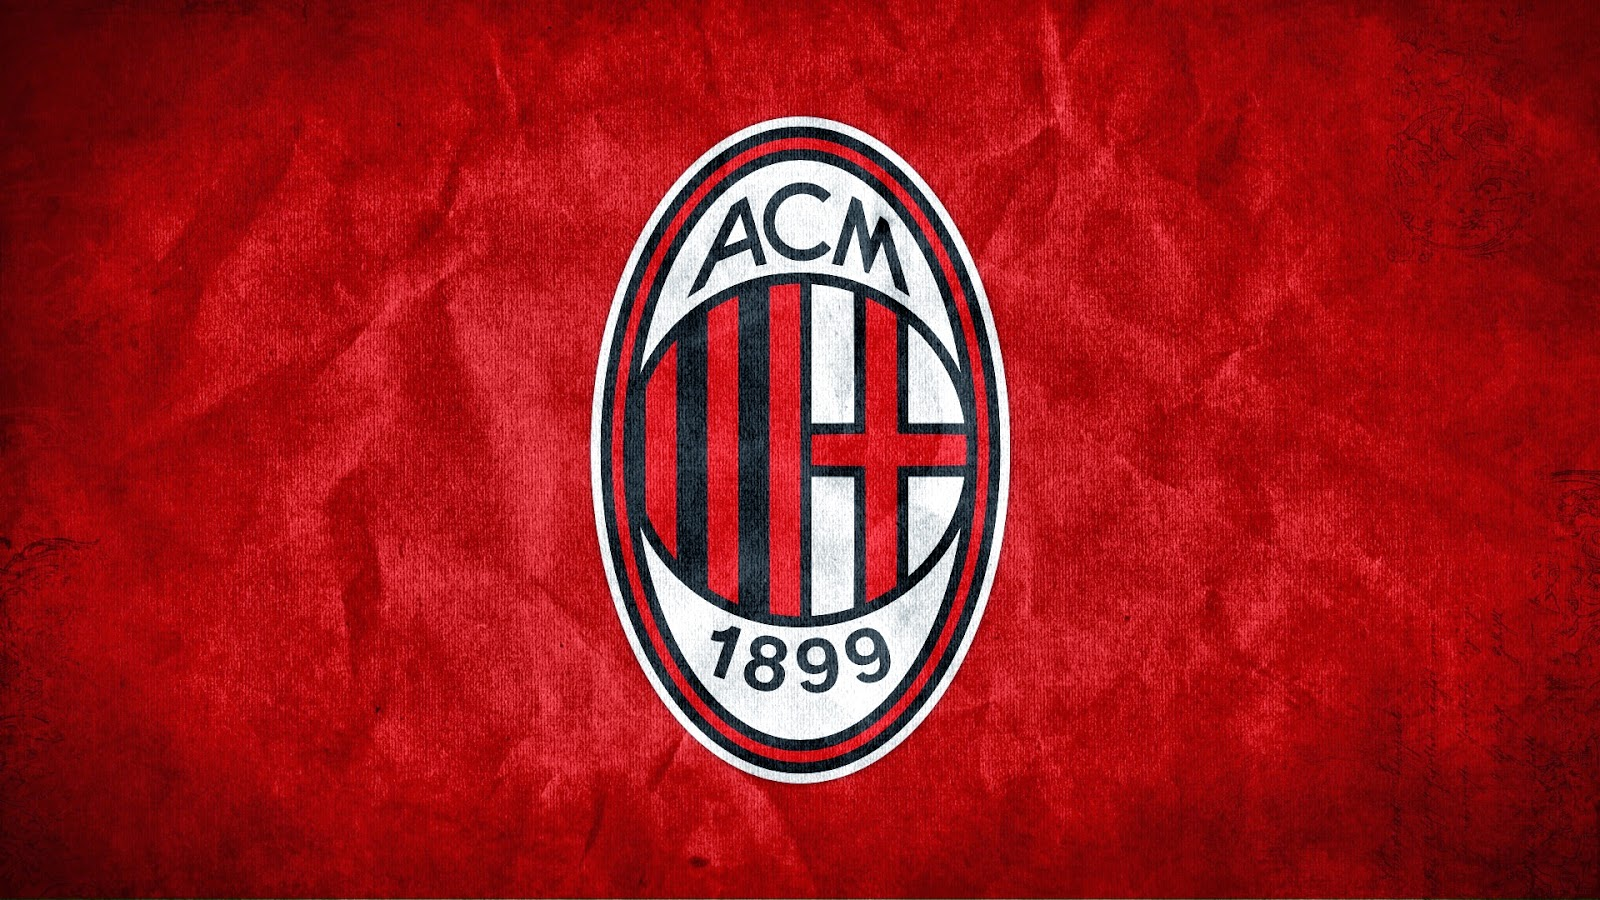 w ac milan - photo#29